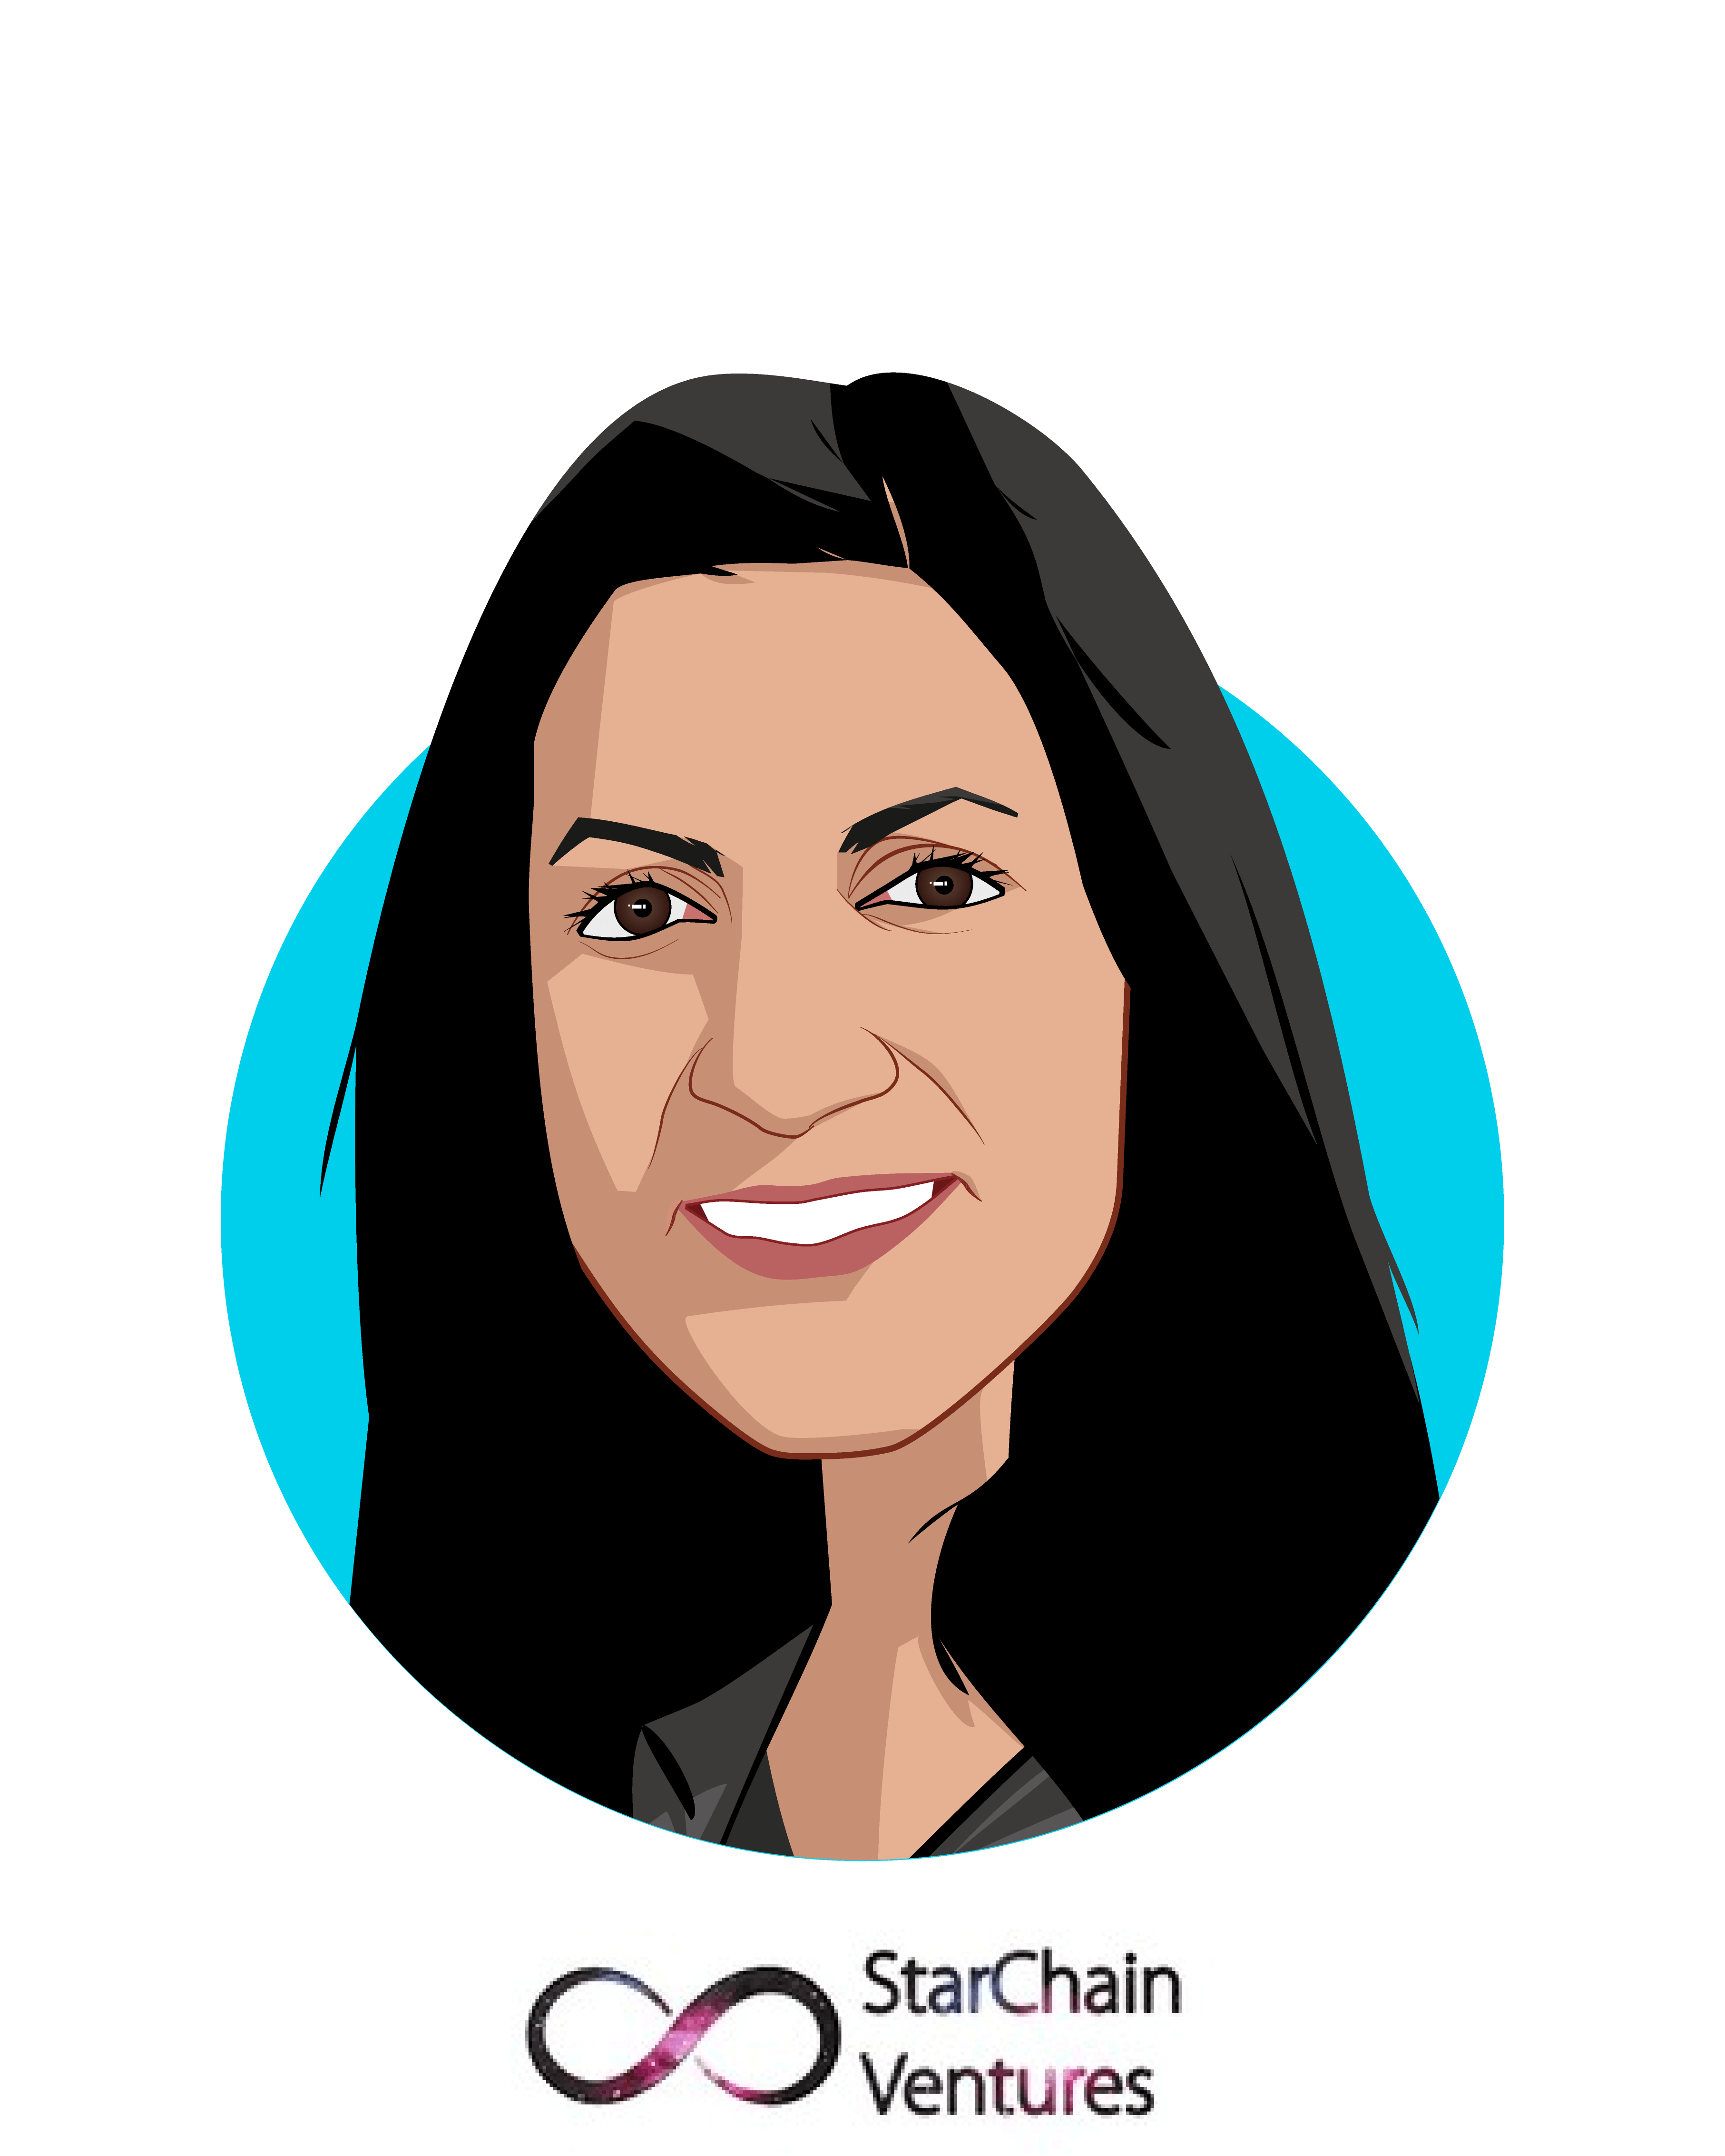 Main caricature of Radhika Iyengar-Emens, who is speaking at HLTH and is Founding Partner at StarChain Ventures